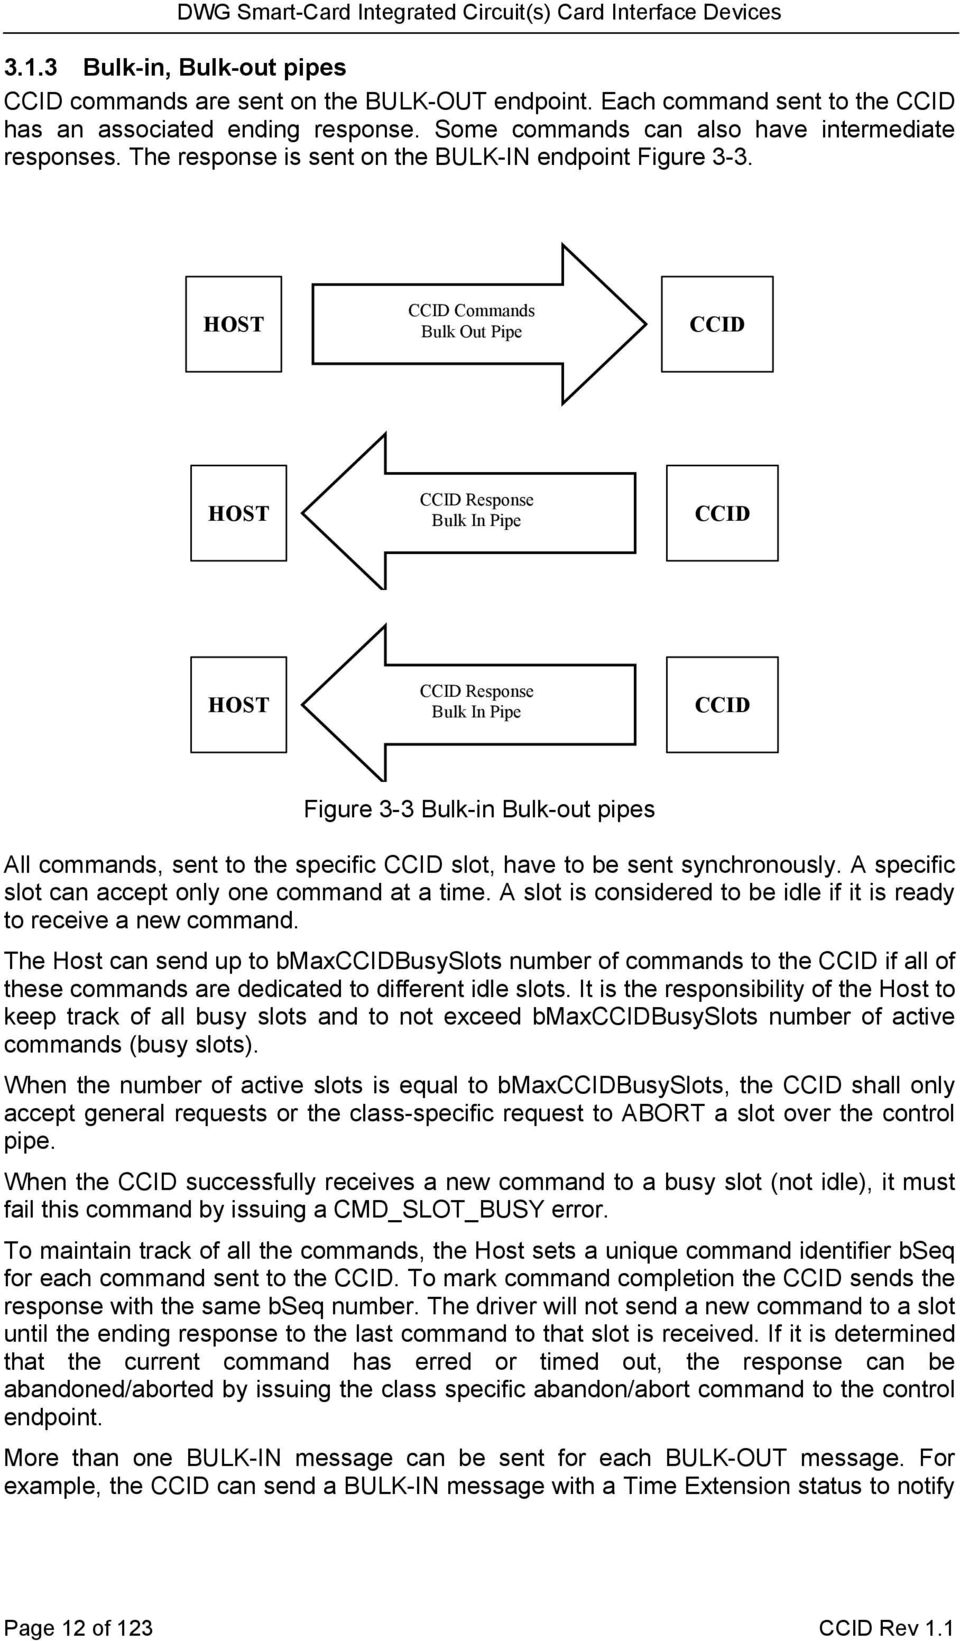 Universal Serial Bus  Device Class: Smart Card CCID  Specification